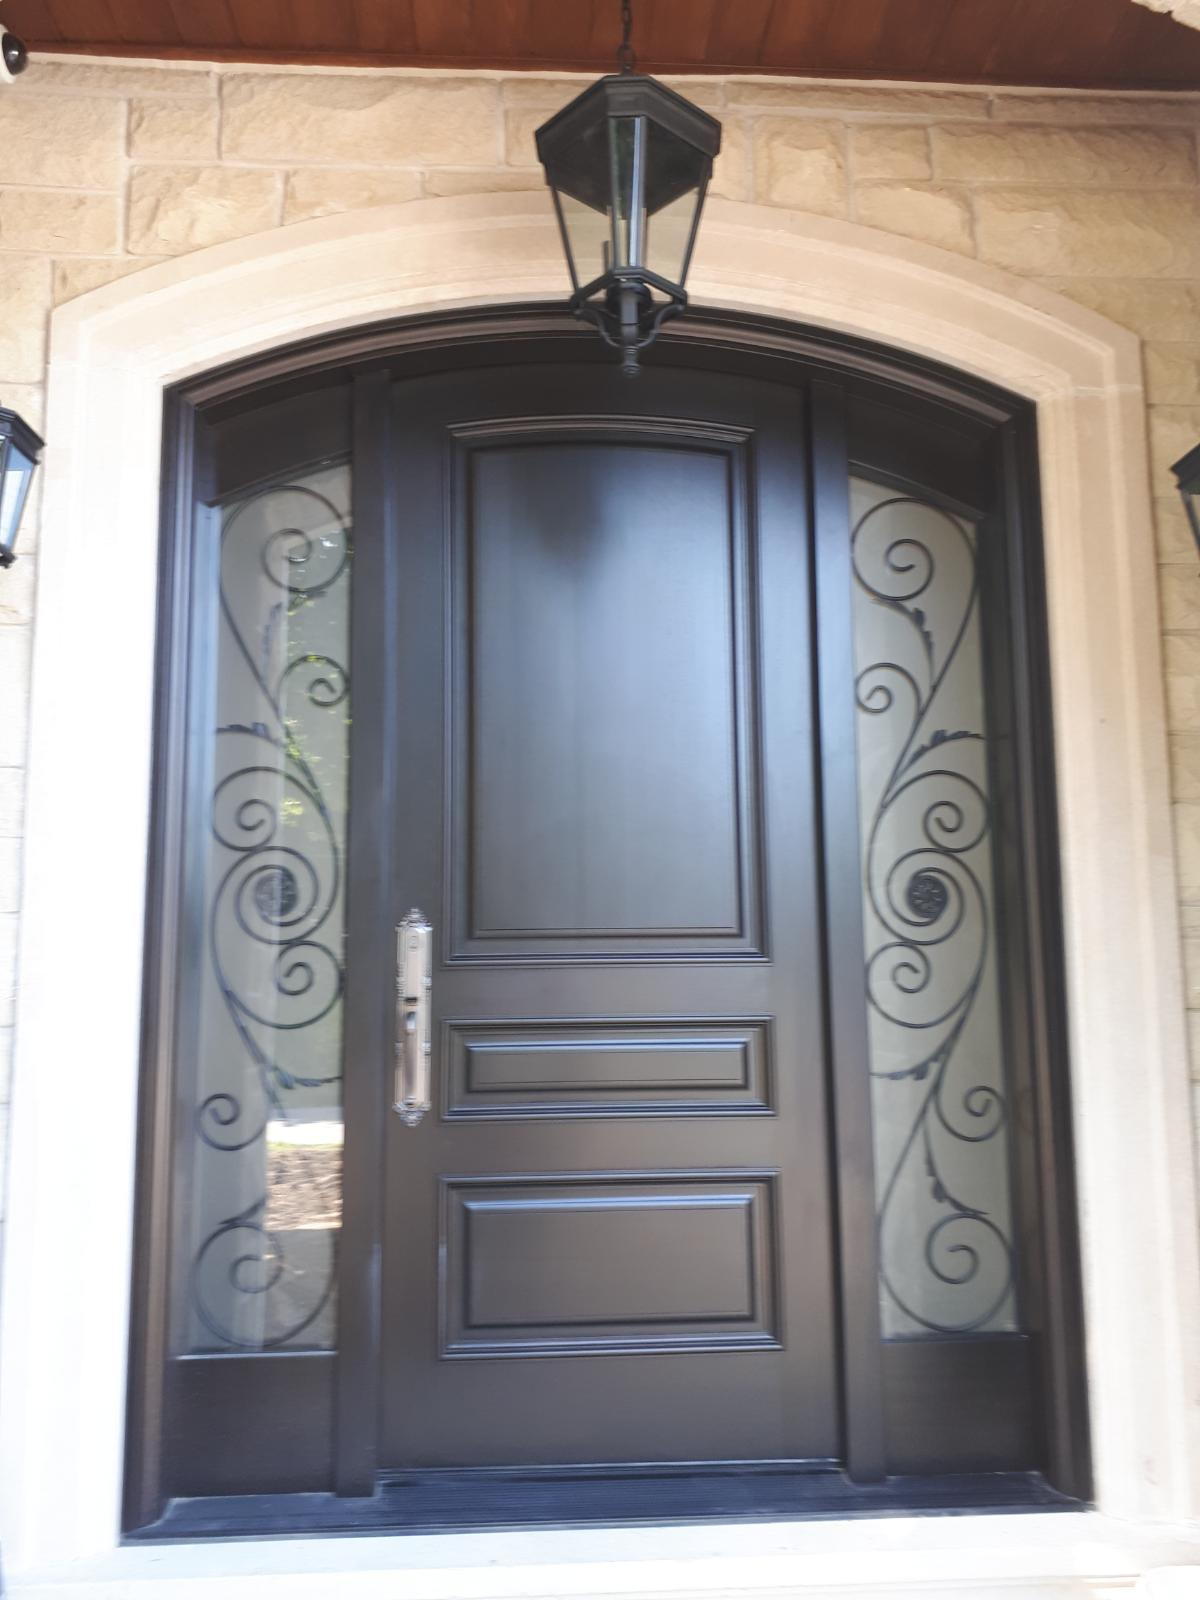 """Nothing worth having comes easy"" #SolidWood, #Doors, #Wood #Mahogany, #CustomMadeDoors, #EntryDoors.#DistinctiveLo­ok, #FityourHome Made by #NorthwoodDoorsInc. Your best value and quality, #HandCraftedDoors. Every door #Manifactured by us has our corporate stamp - a testament to our dedication and passion in #Woodwork. Let #NorthwoodDoorsInc. add to your home's #CurbAppeal by enhancing the quality and beauty of your #EntryDoors. Visit our #Showroom to envision how one of our many #doors on display might look like at your #Home. Contact us today Tel. 416-253-2034, info@northwooddoors.com, www.northwooddoor.com."